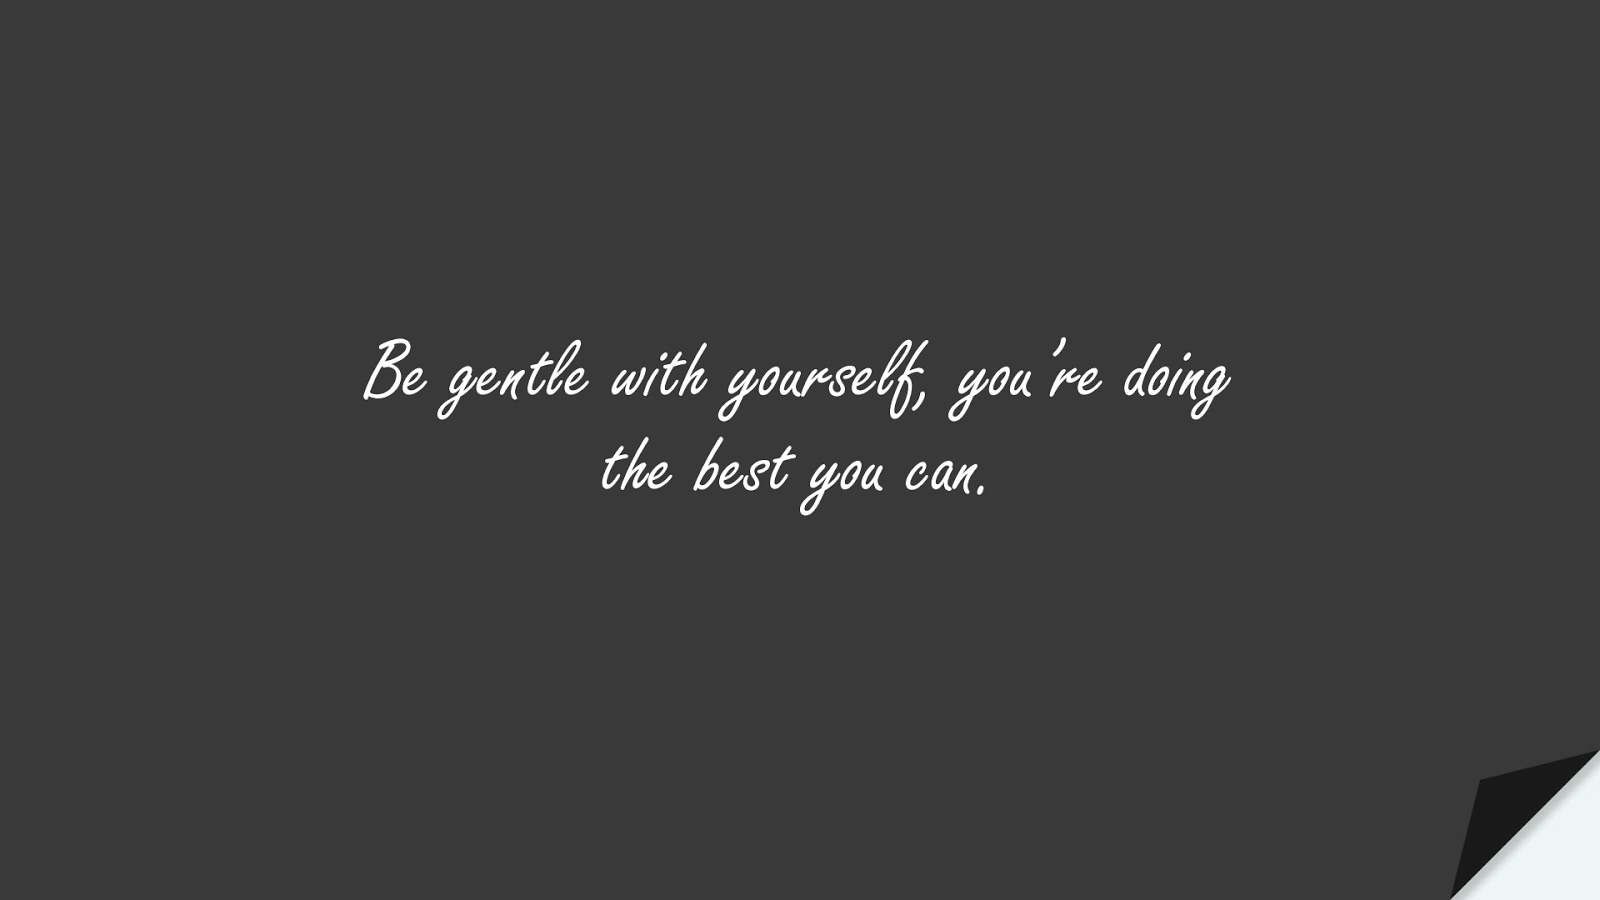 Be gentle with yourself, you're doing the best you can.FALSE